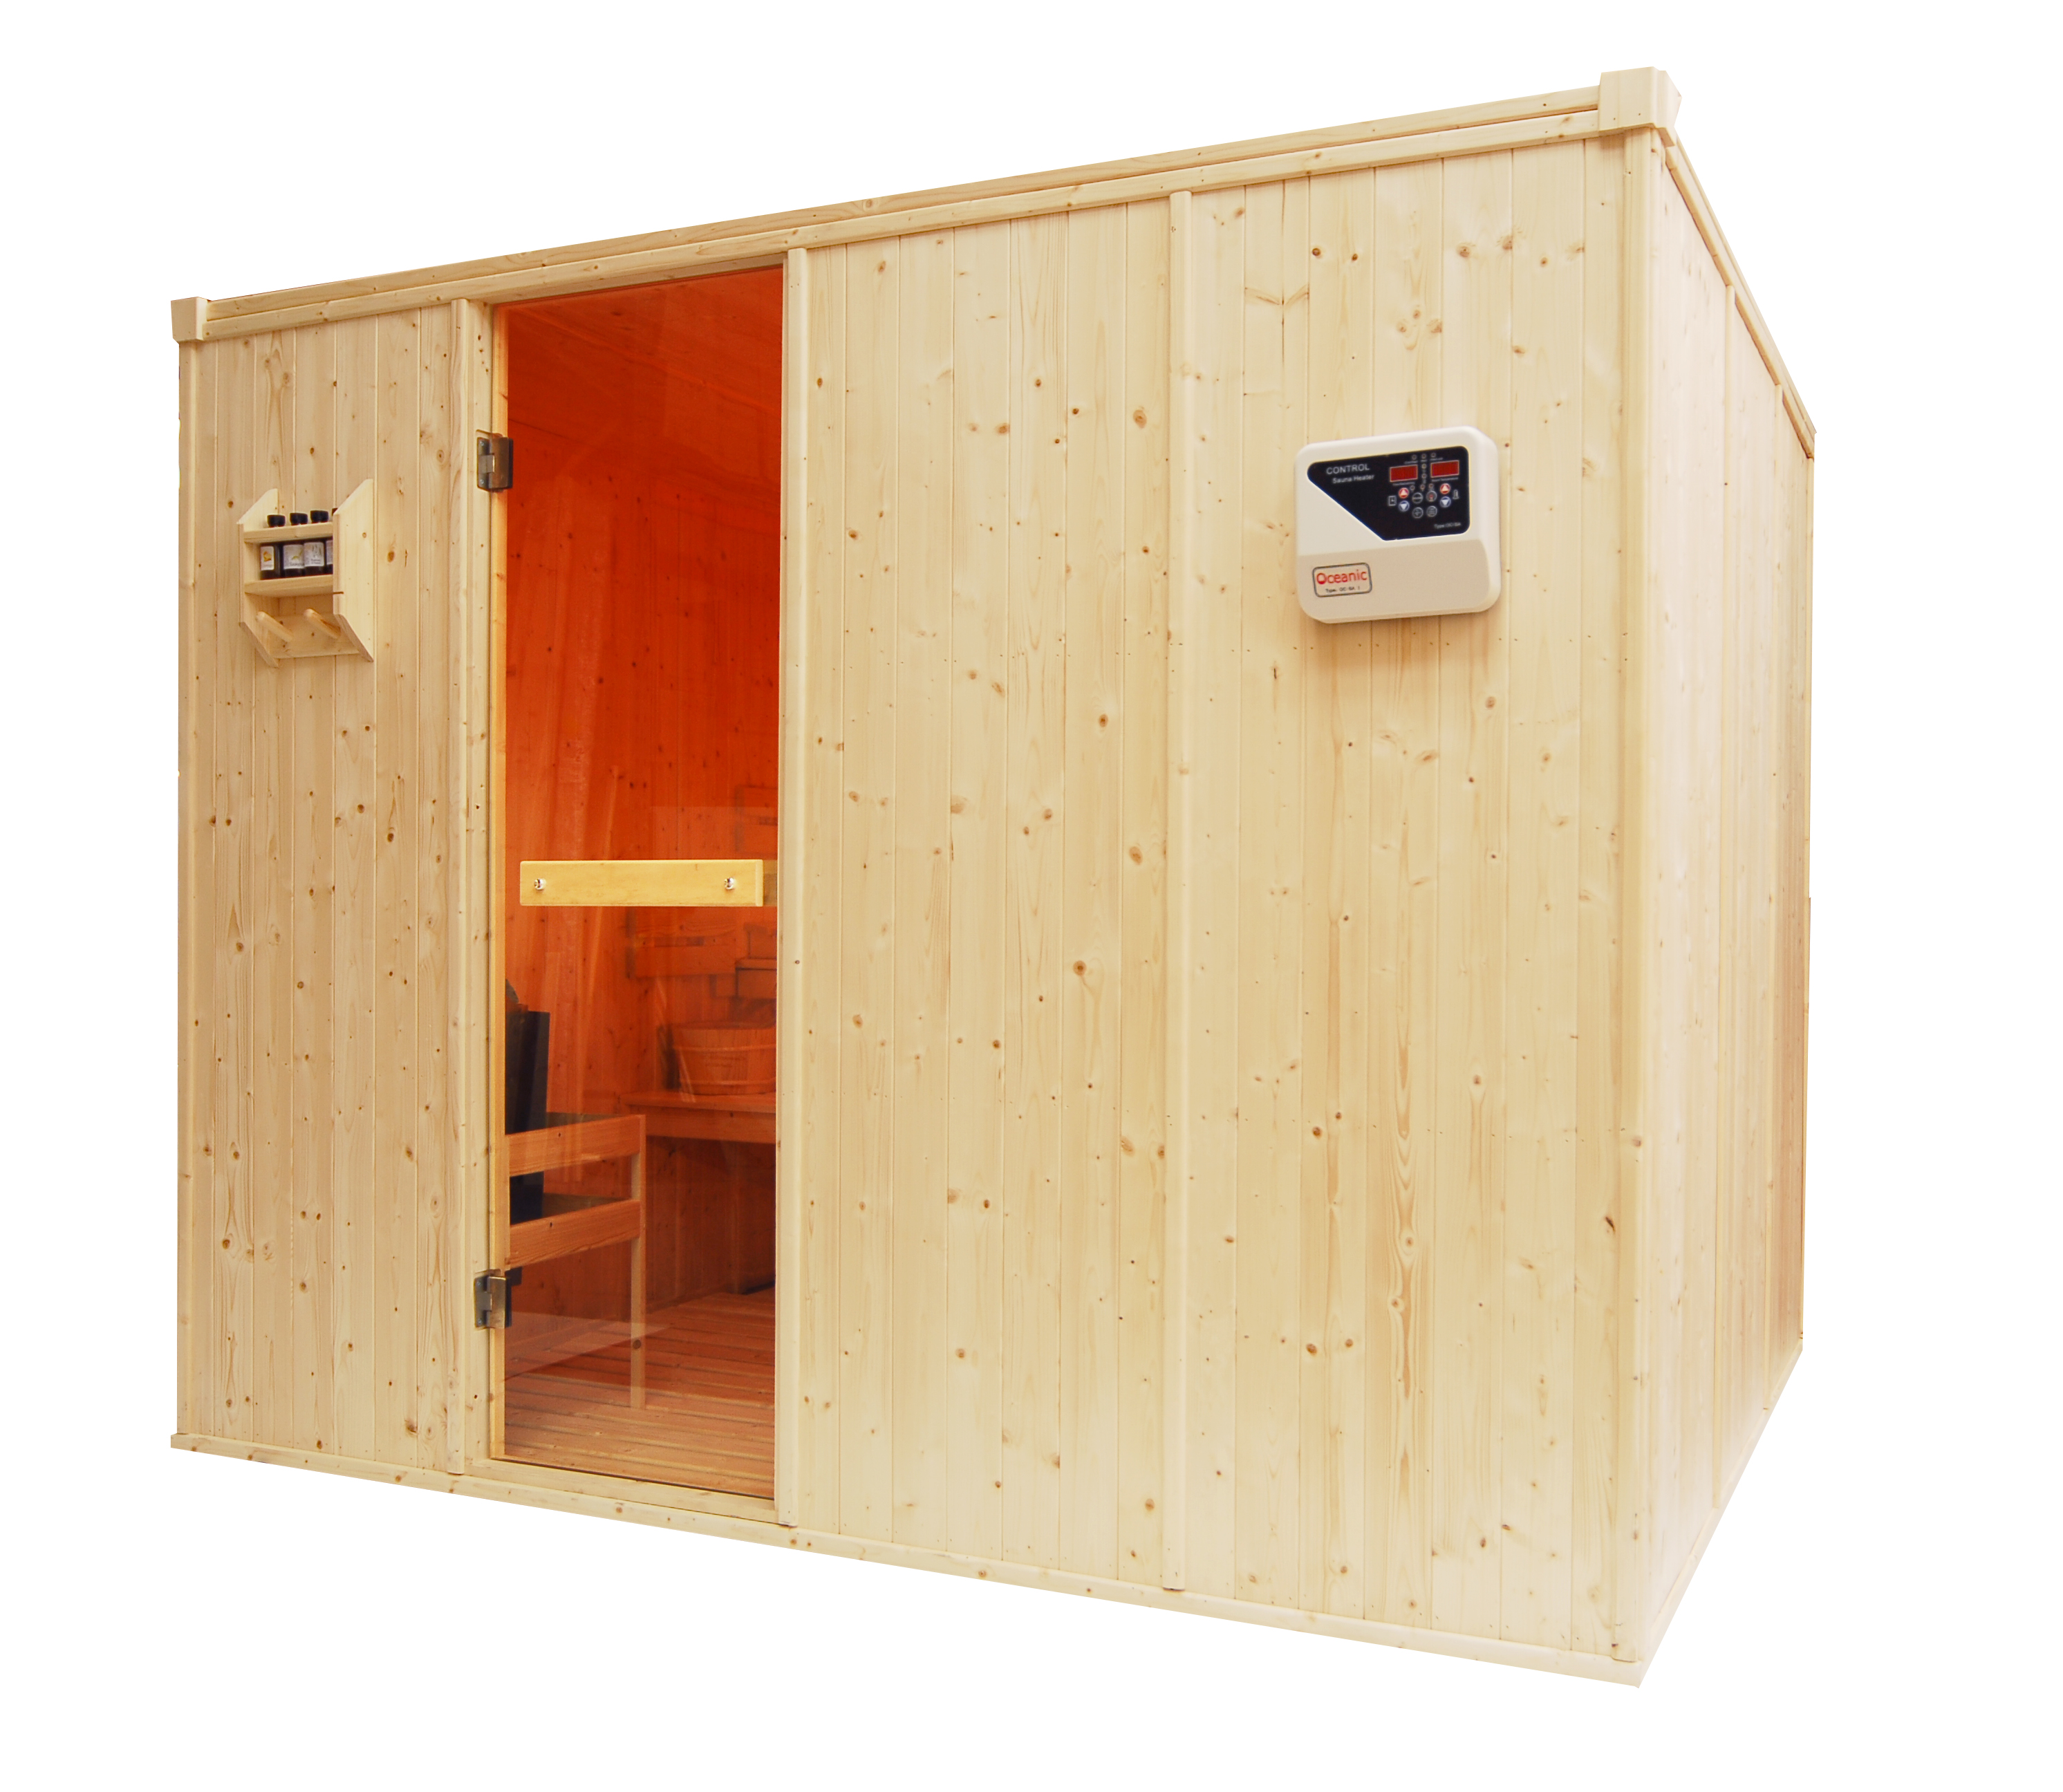 Light Duty Commercial Saunas